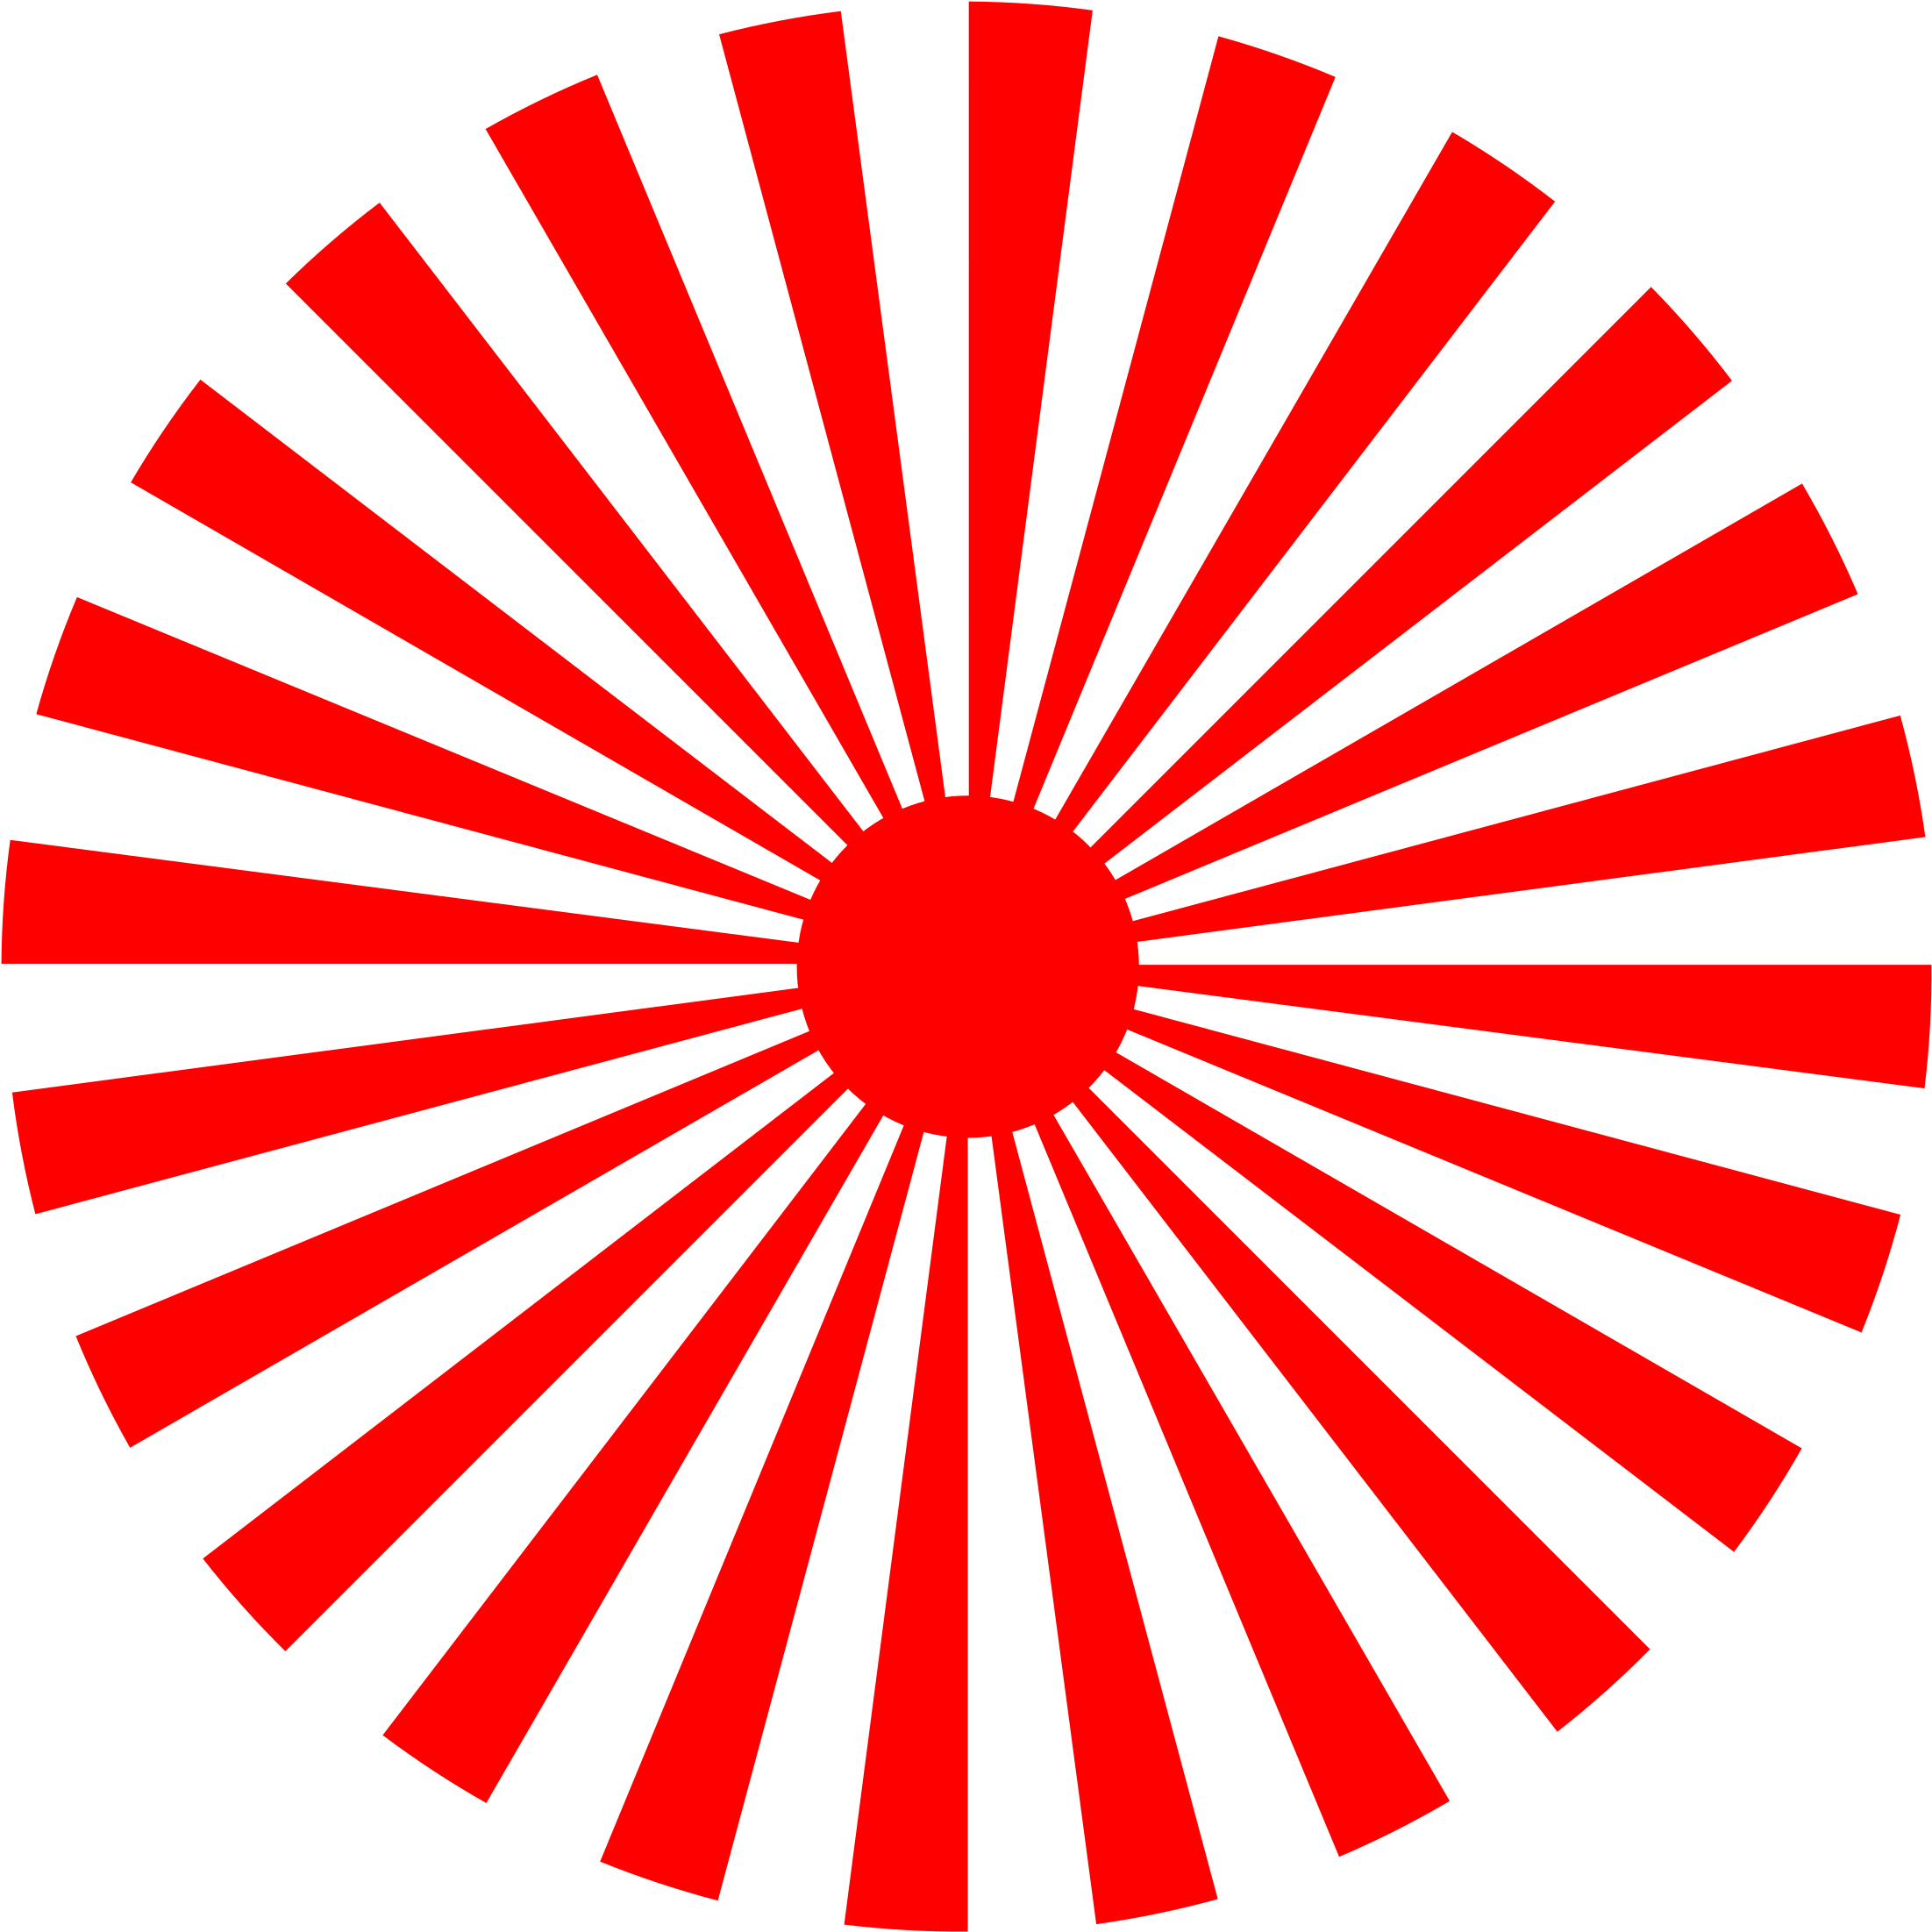 Ray Clipart Abstract Sun Red Sun Ray Png.